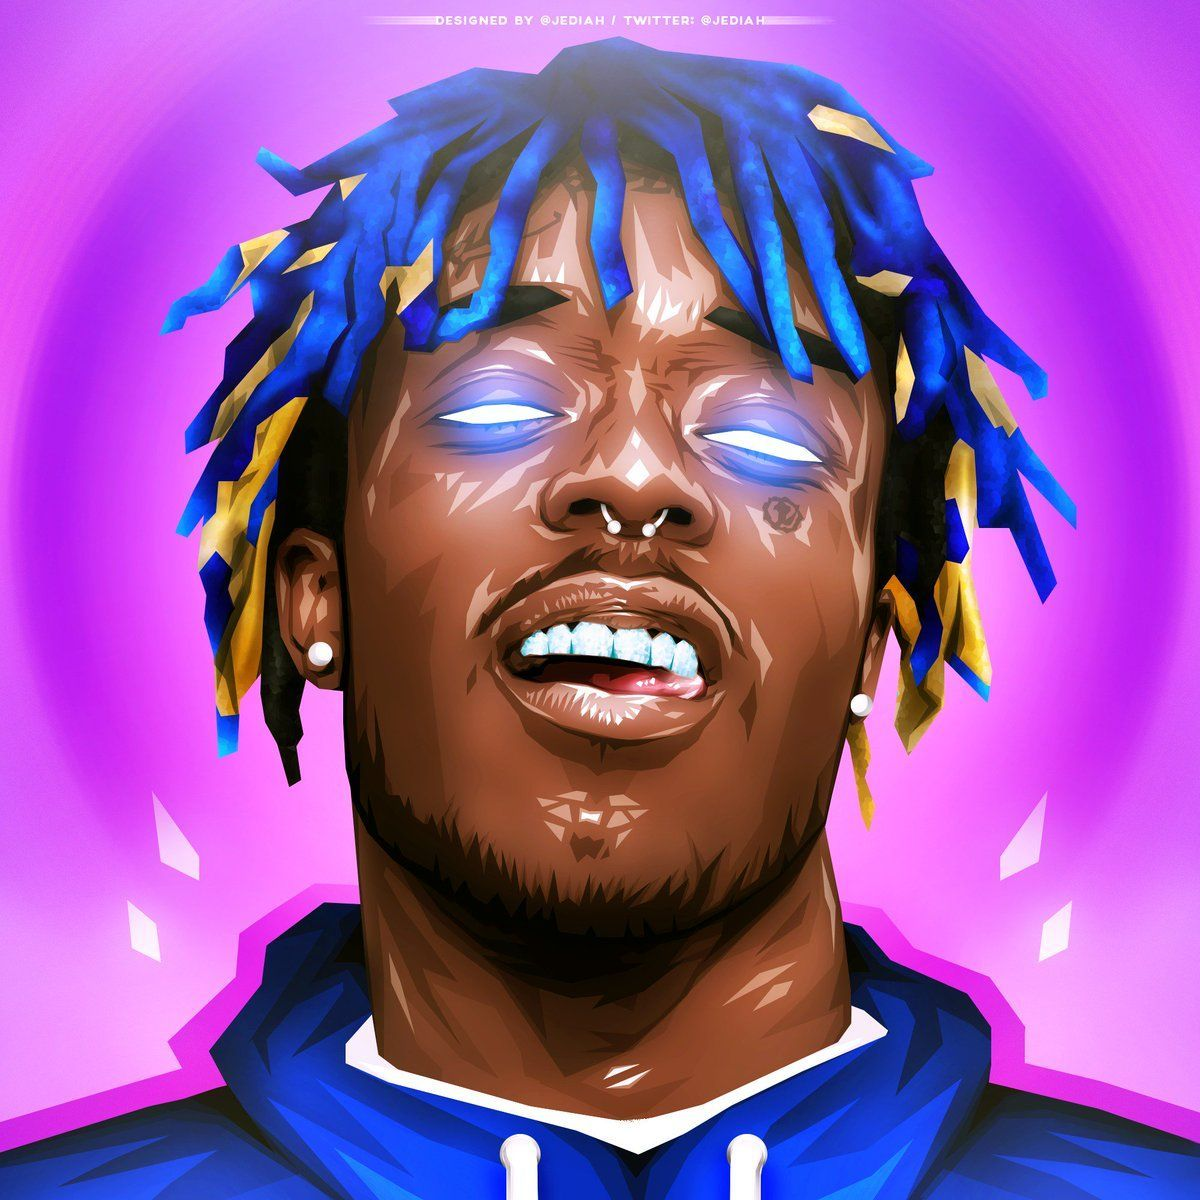 Narto As Lil Uzi Vert Wallpapers Top Free Narto As Lil Uzi Vert Backgrounds Wallpaperaccess Stream lil uzi vert x future x metro boomin type beat by rohlibeats from desktop or your mobile device. narto as lil uzi vert wallpapers top